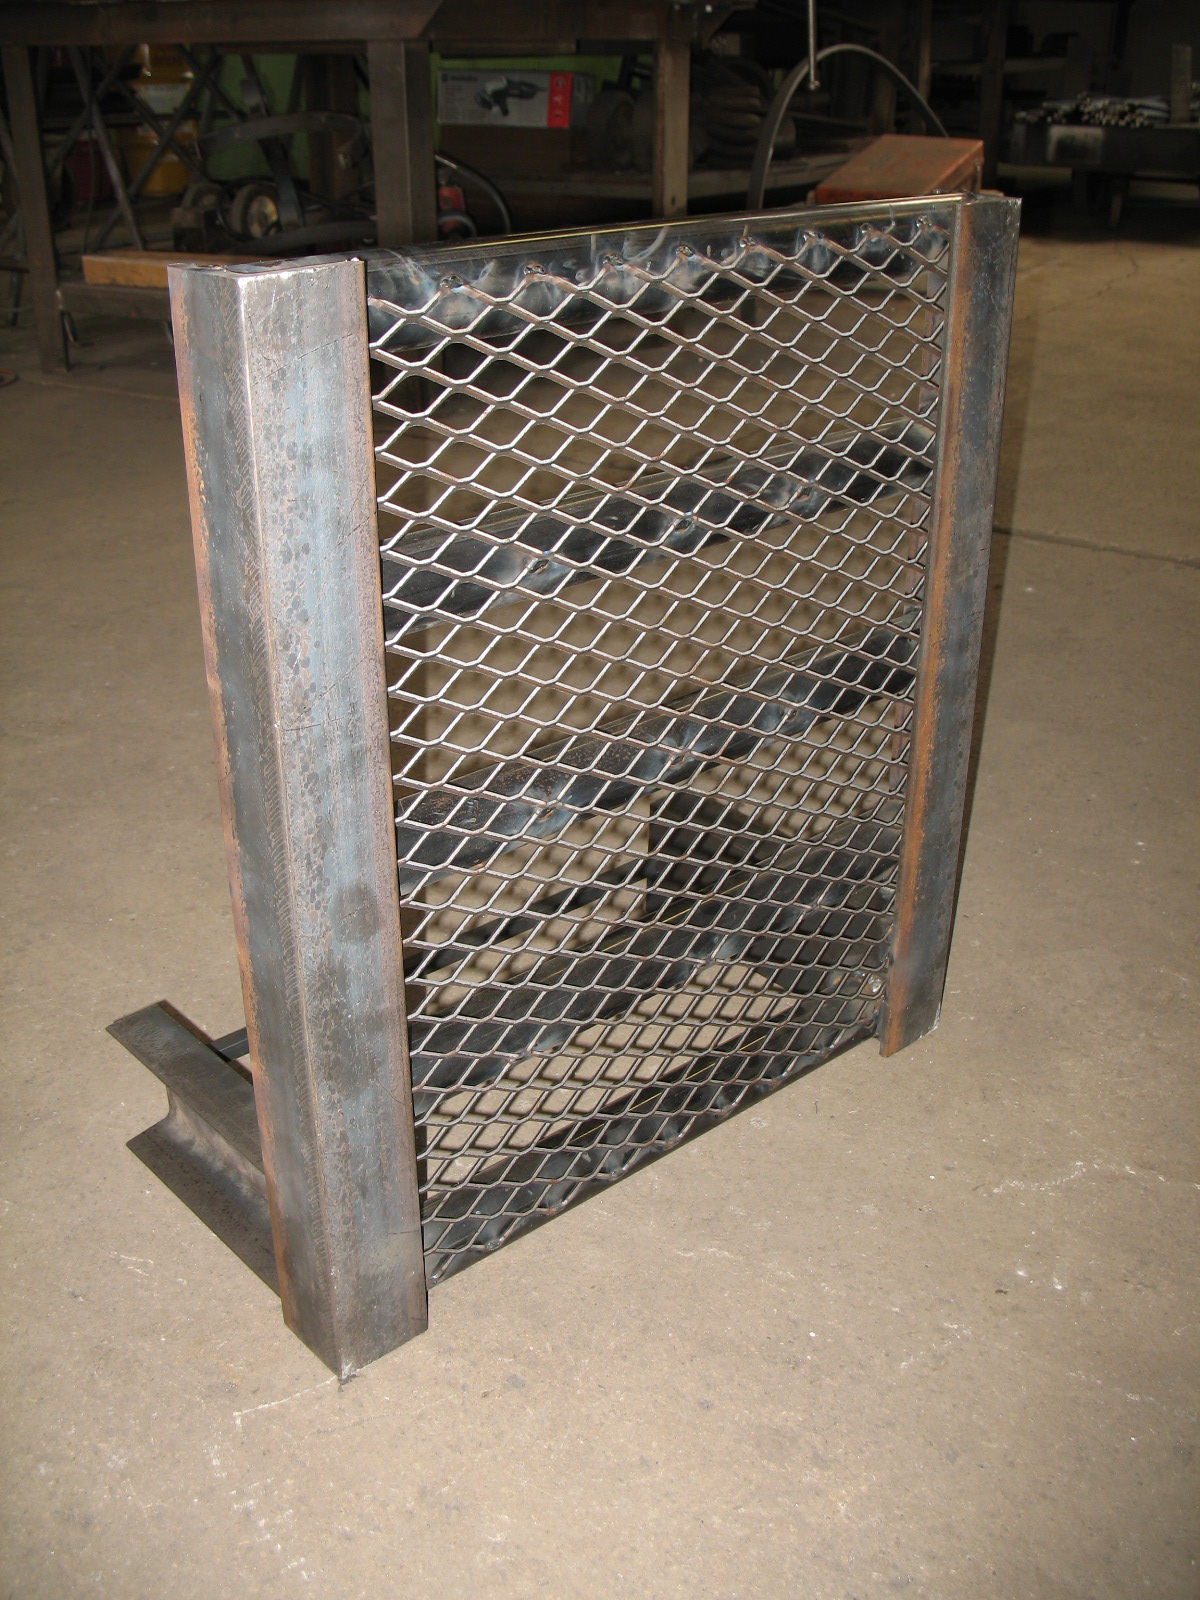 Tractor Grill Guard For Trailer : Gallery misc fabricating img